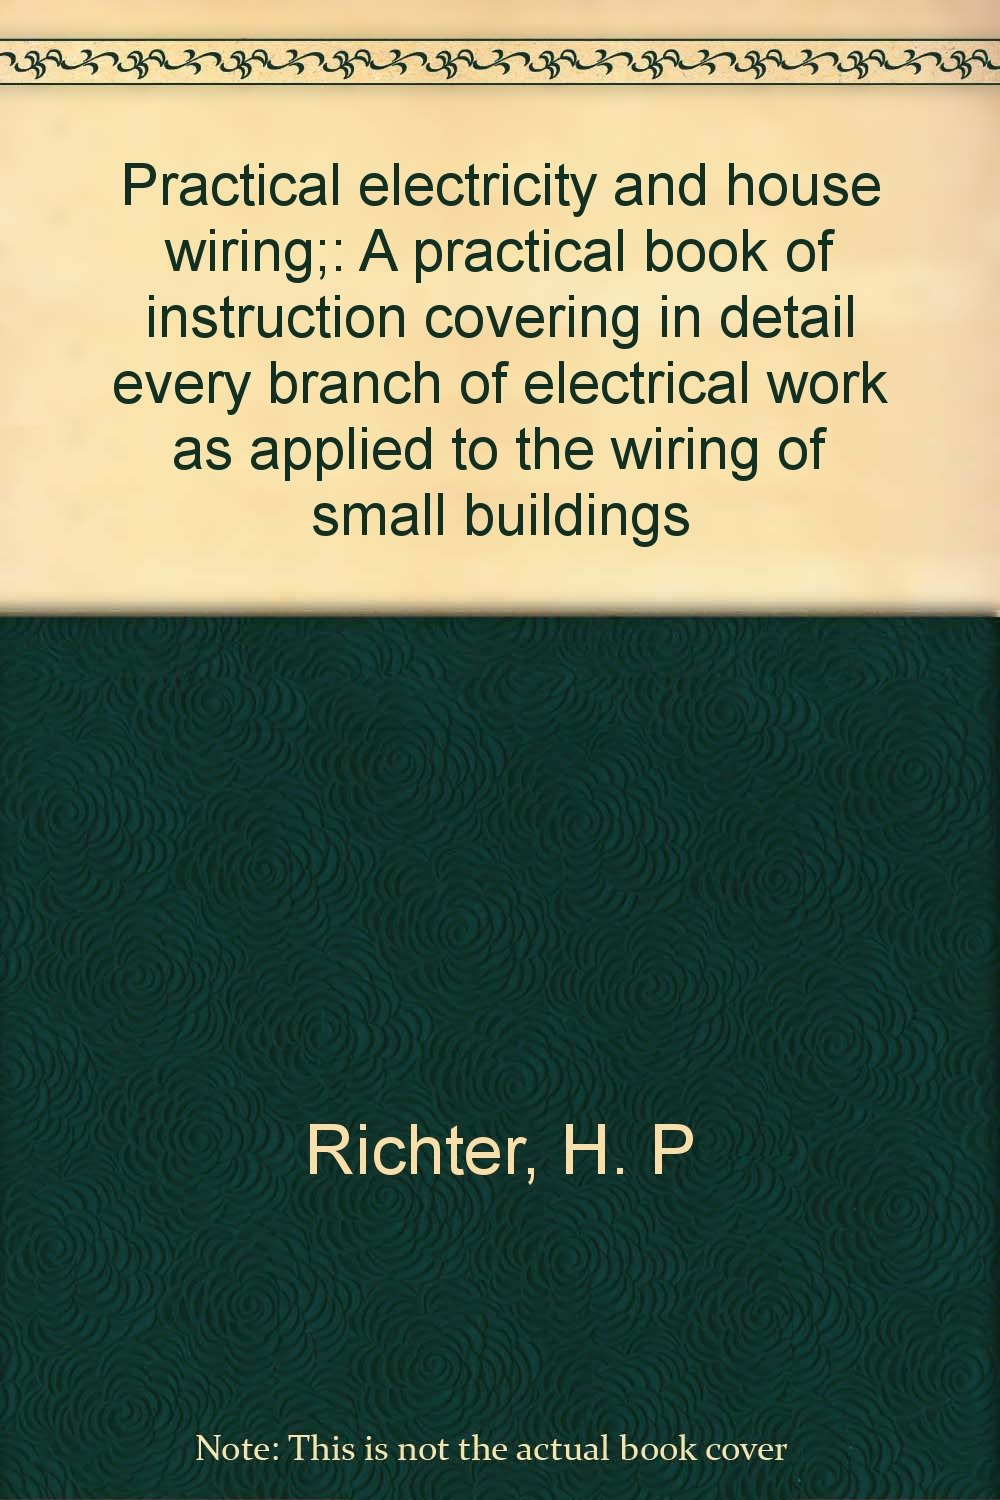 Practical Electricity And House Wiring A Book Of Electricityhouse Electrical Smart Instruction Covering In Detail Every Branch Work As Applied To The